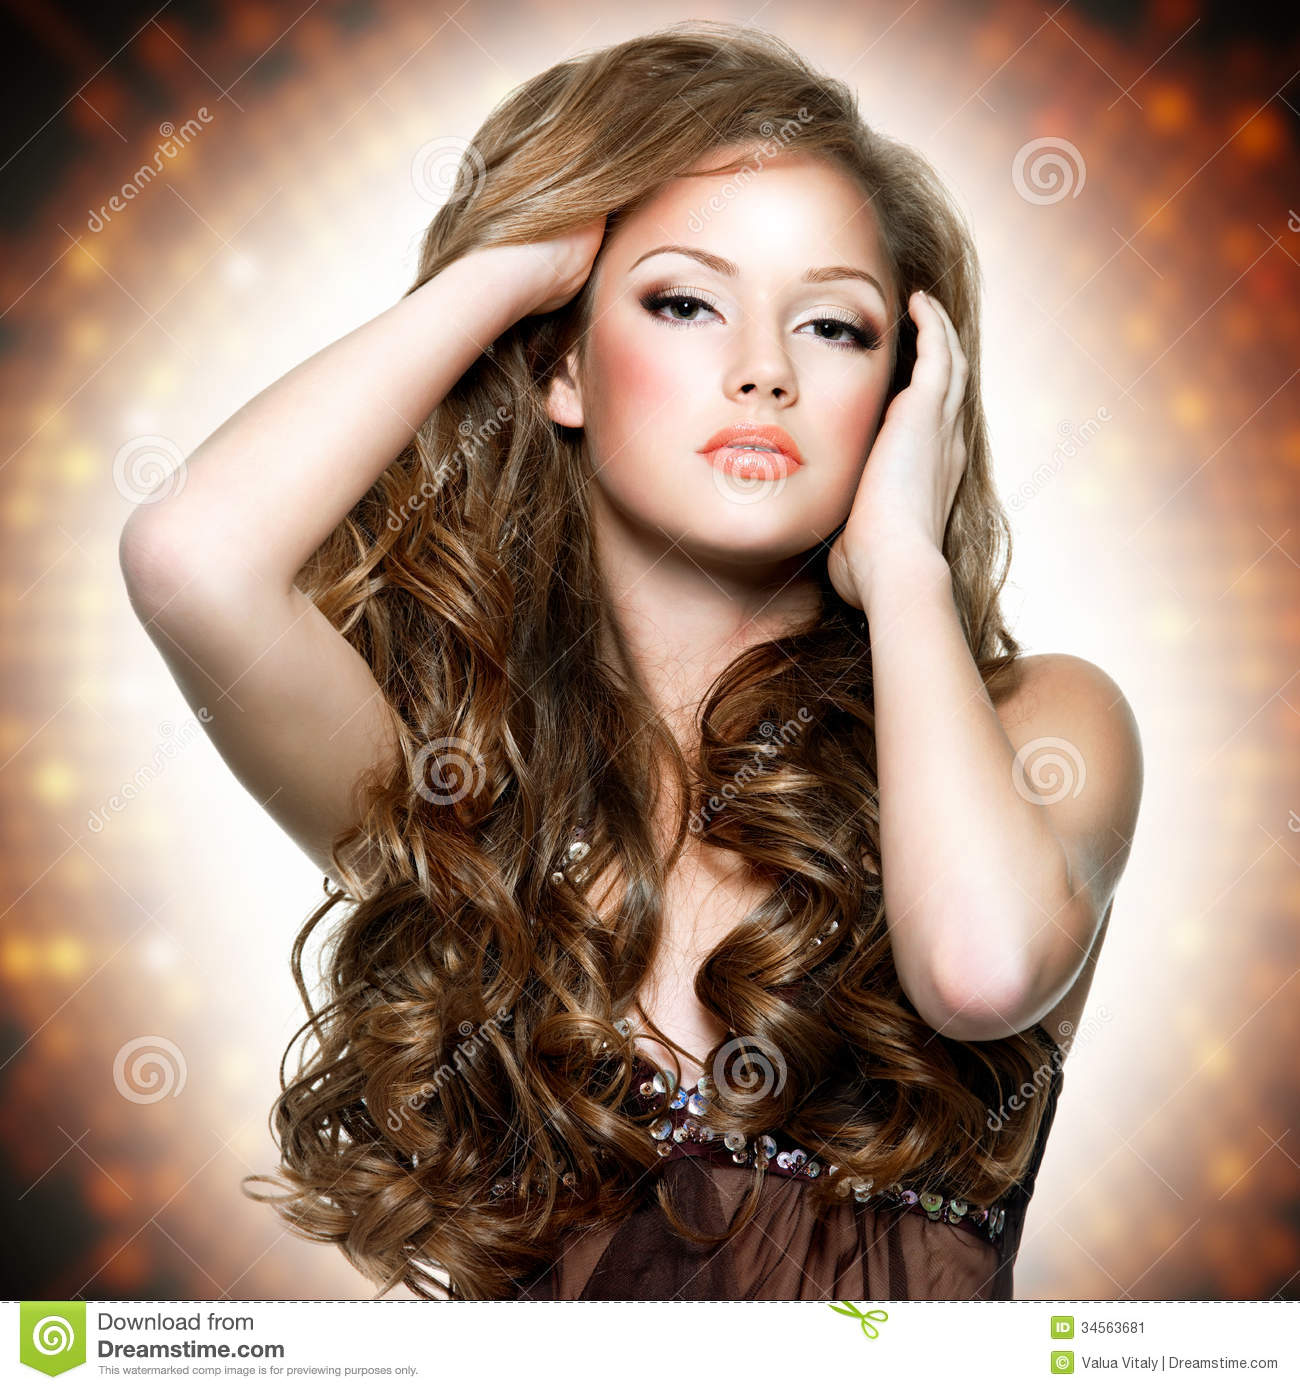 Beautiful woman with attractive face and long curly hairs